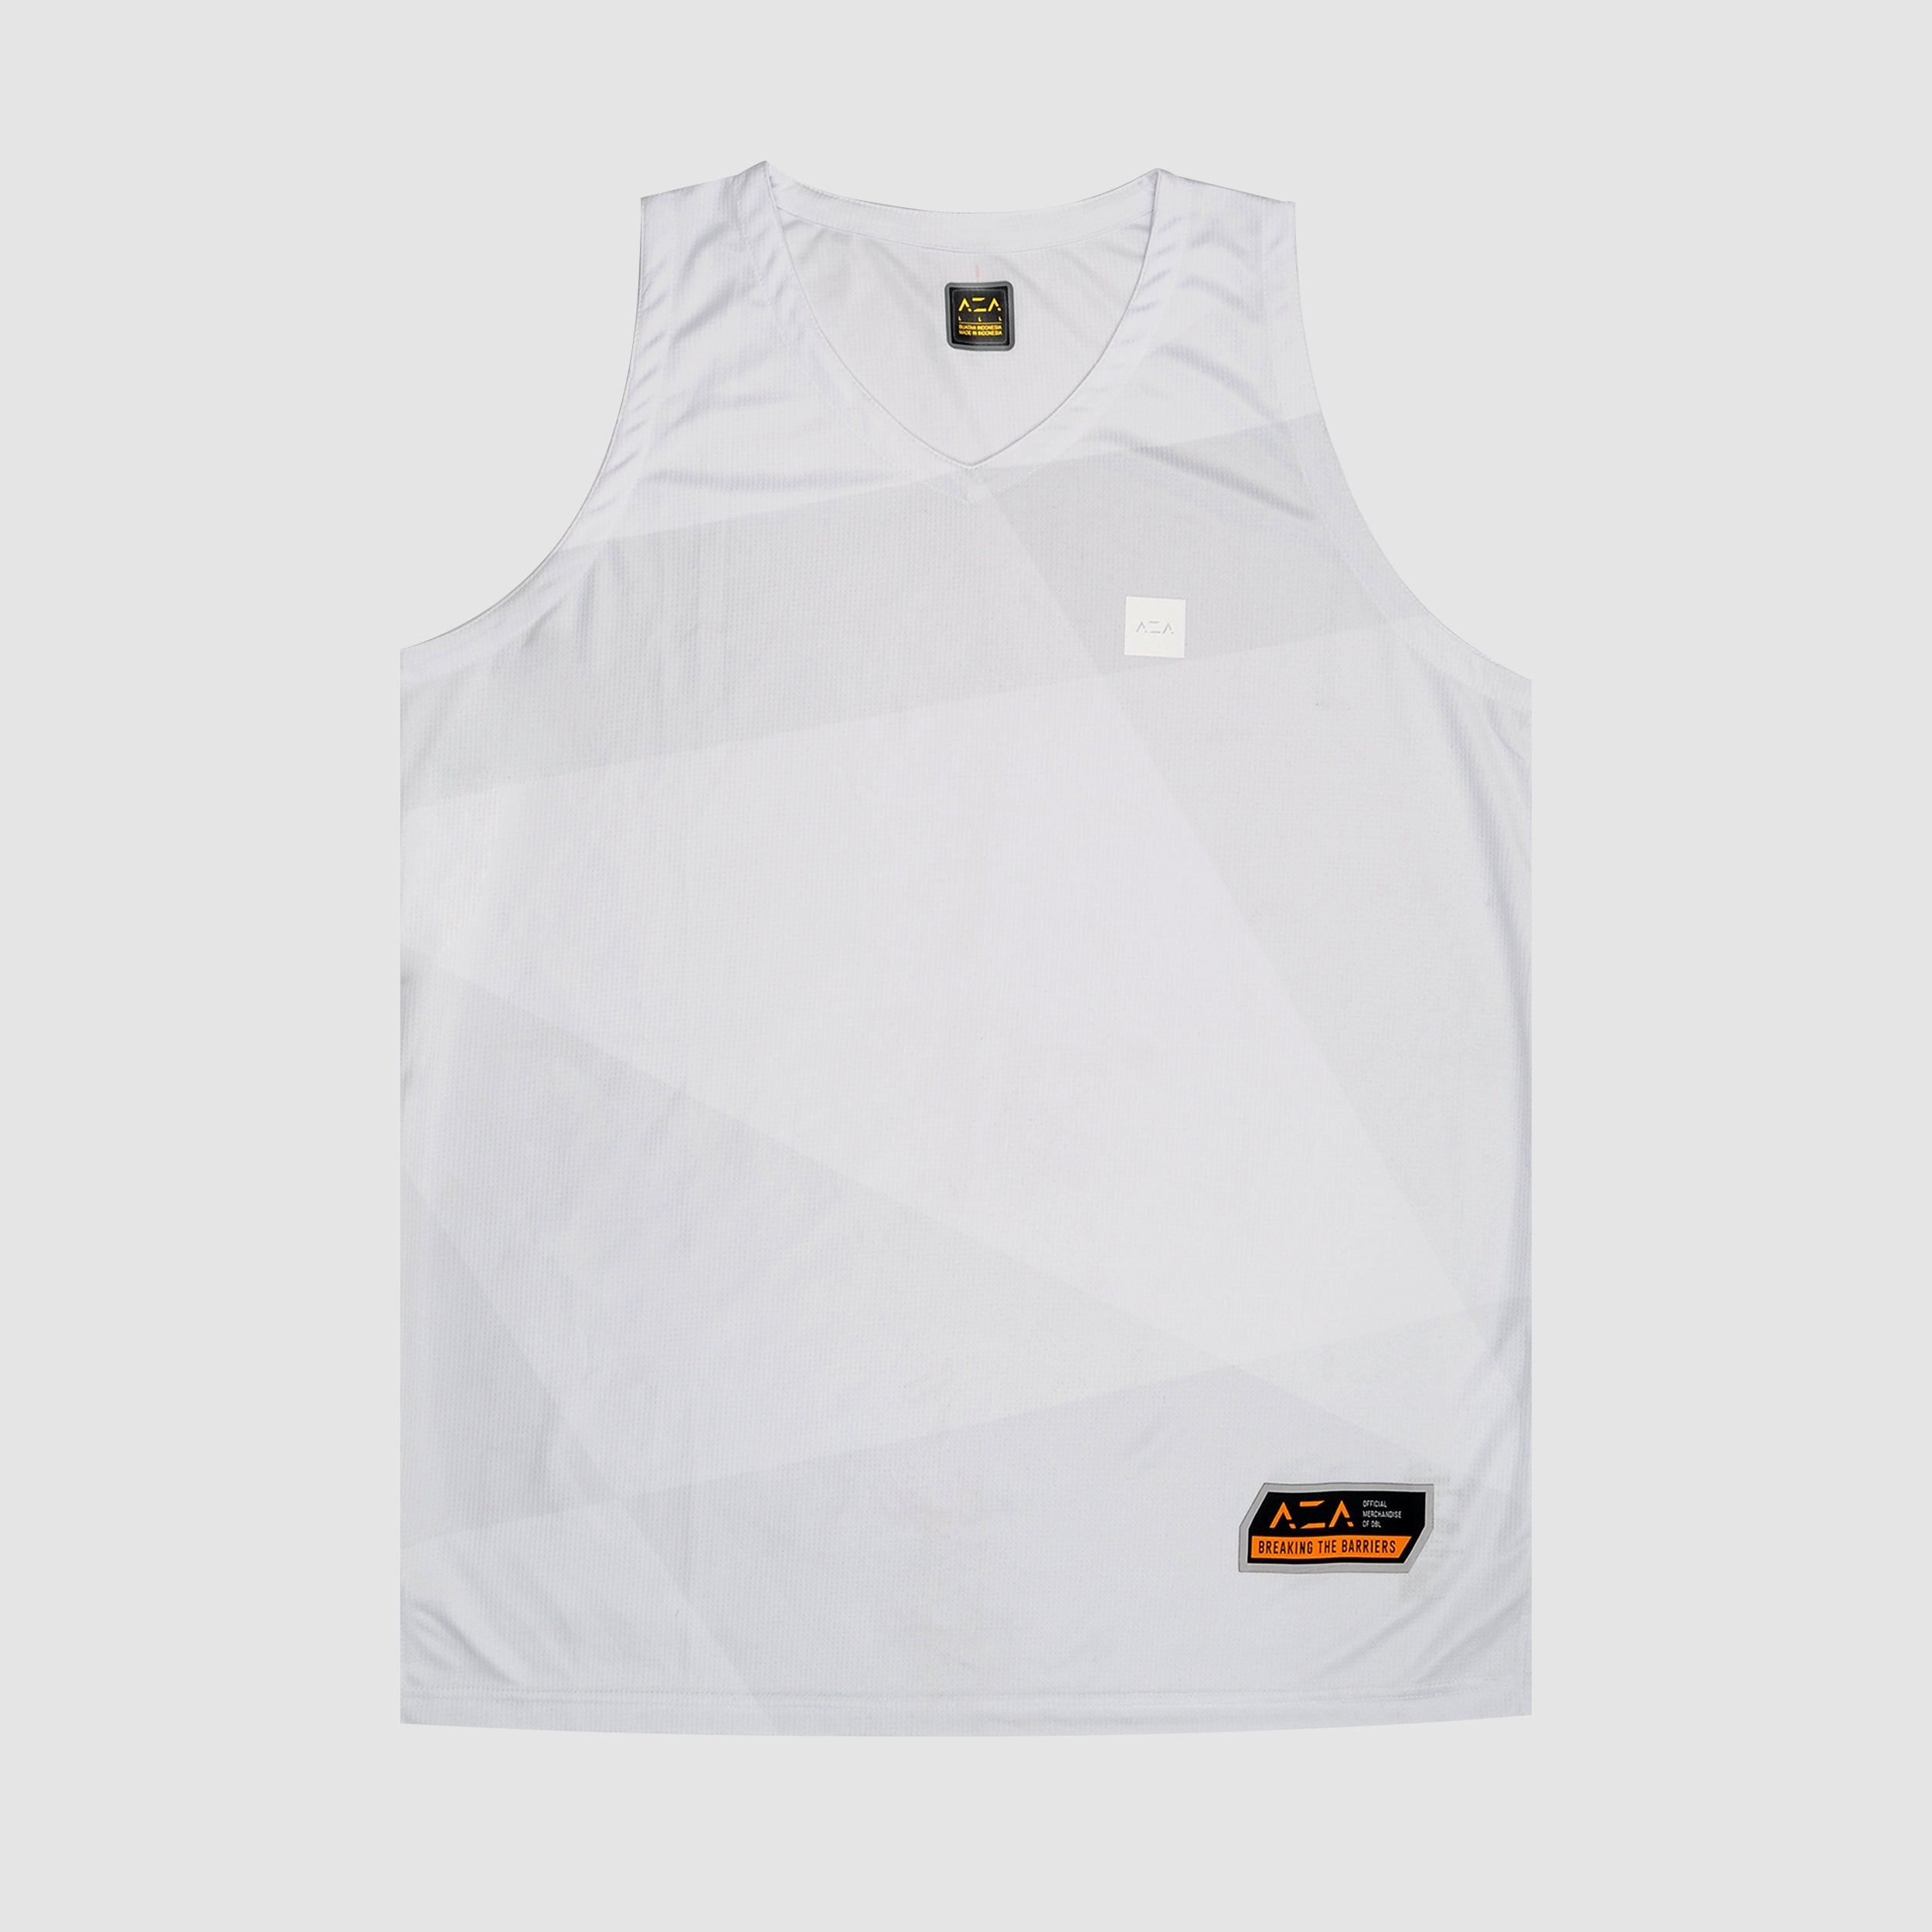 AZA Outlier Vector Jersey - White